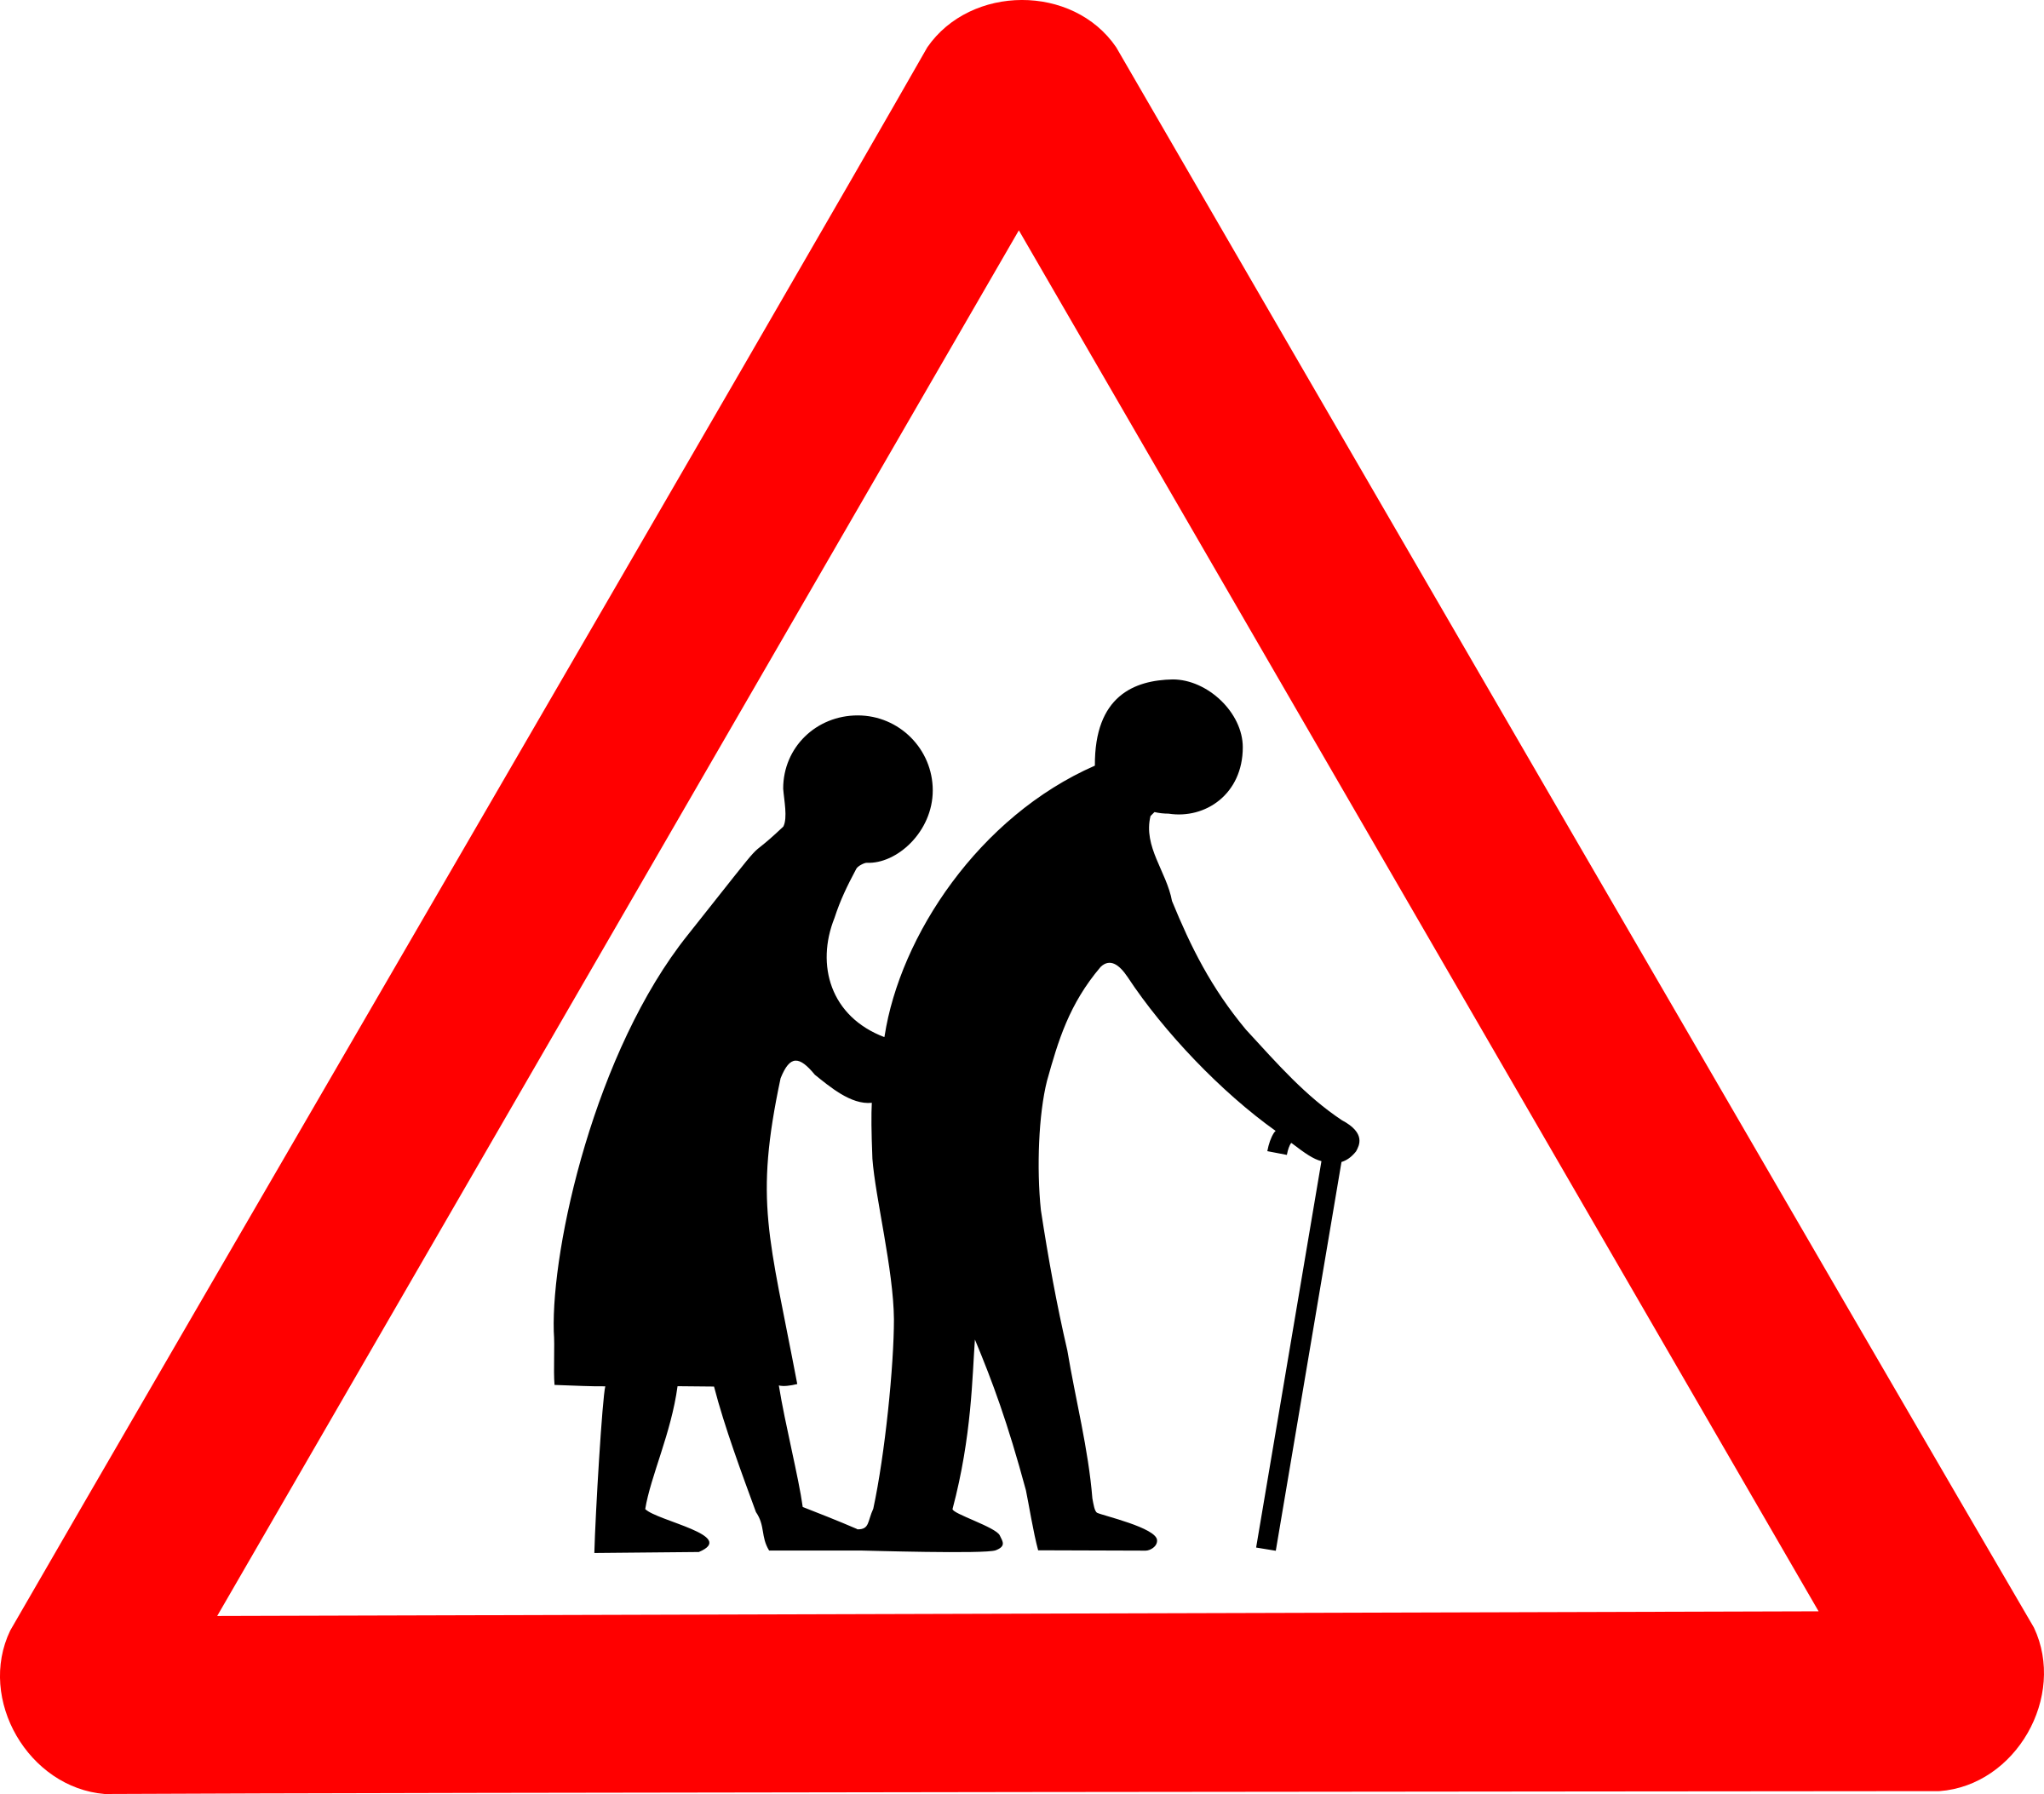 Roadsign old folks by Simarilius